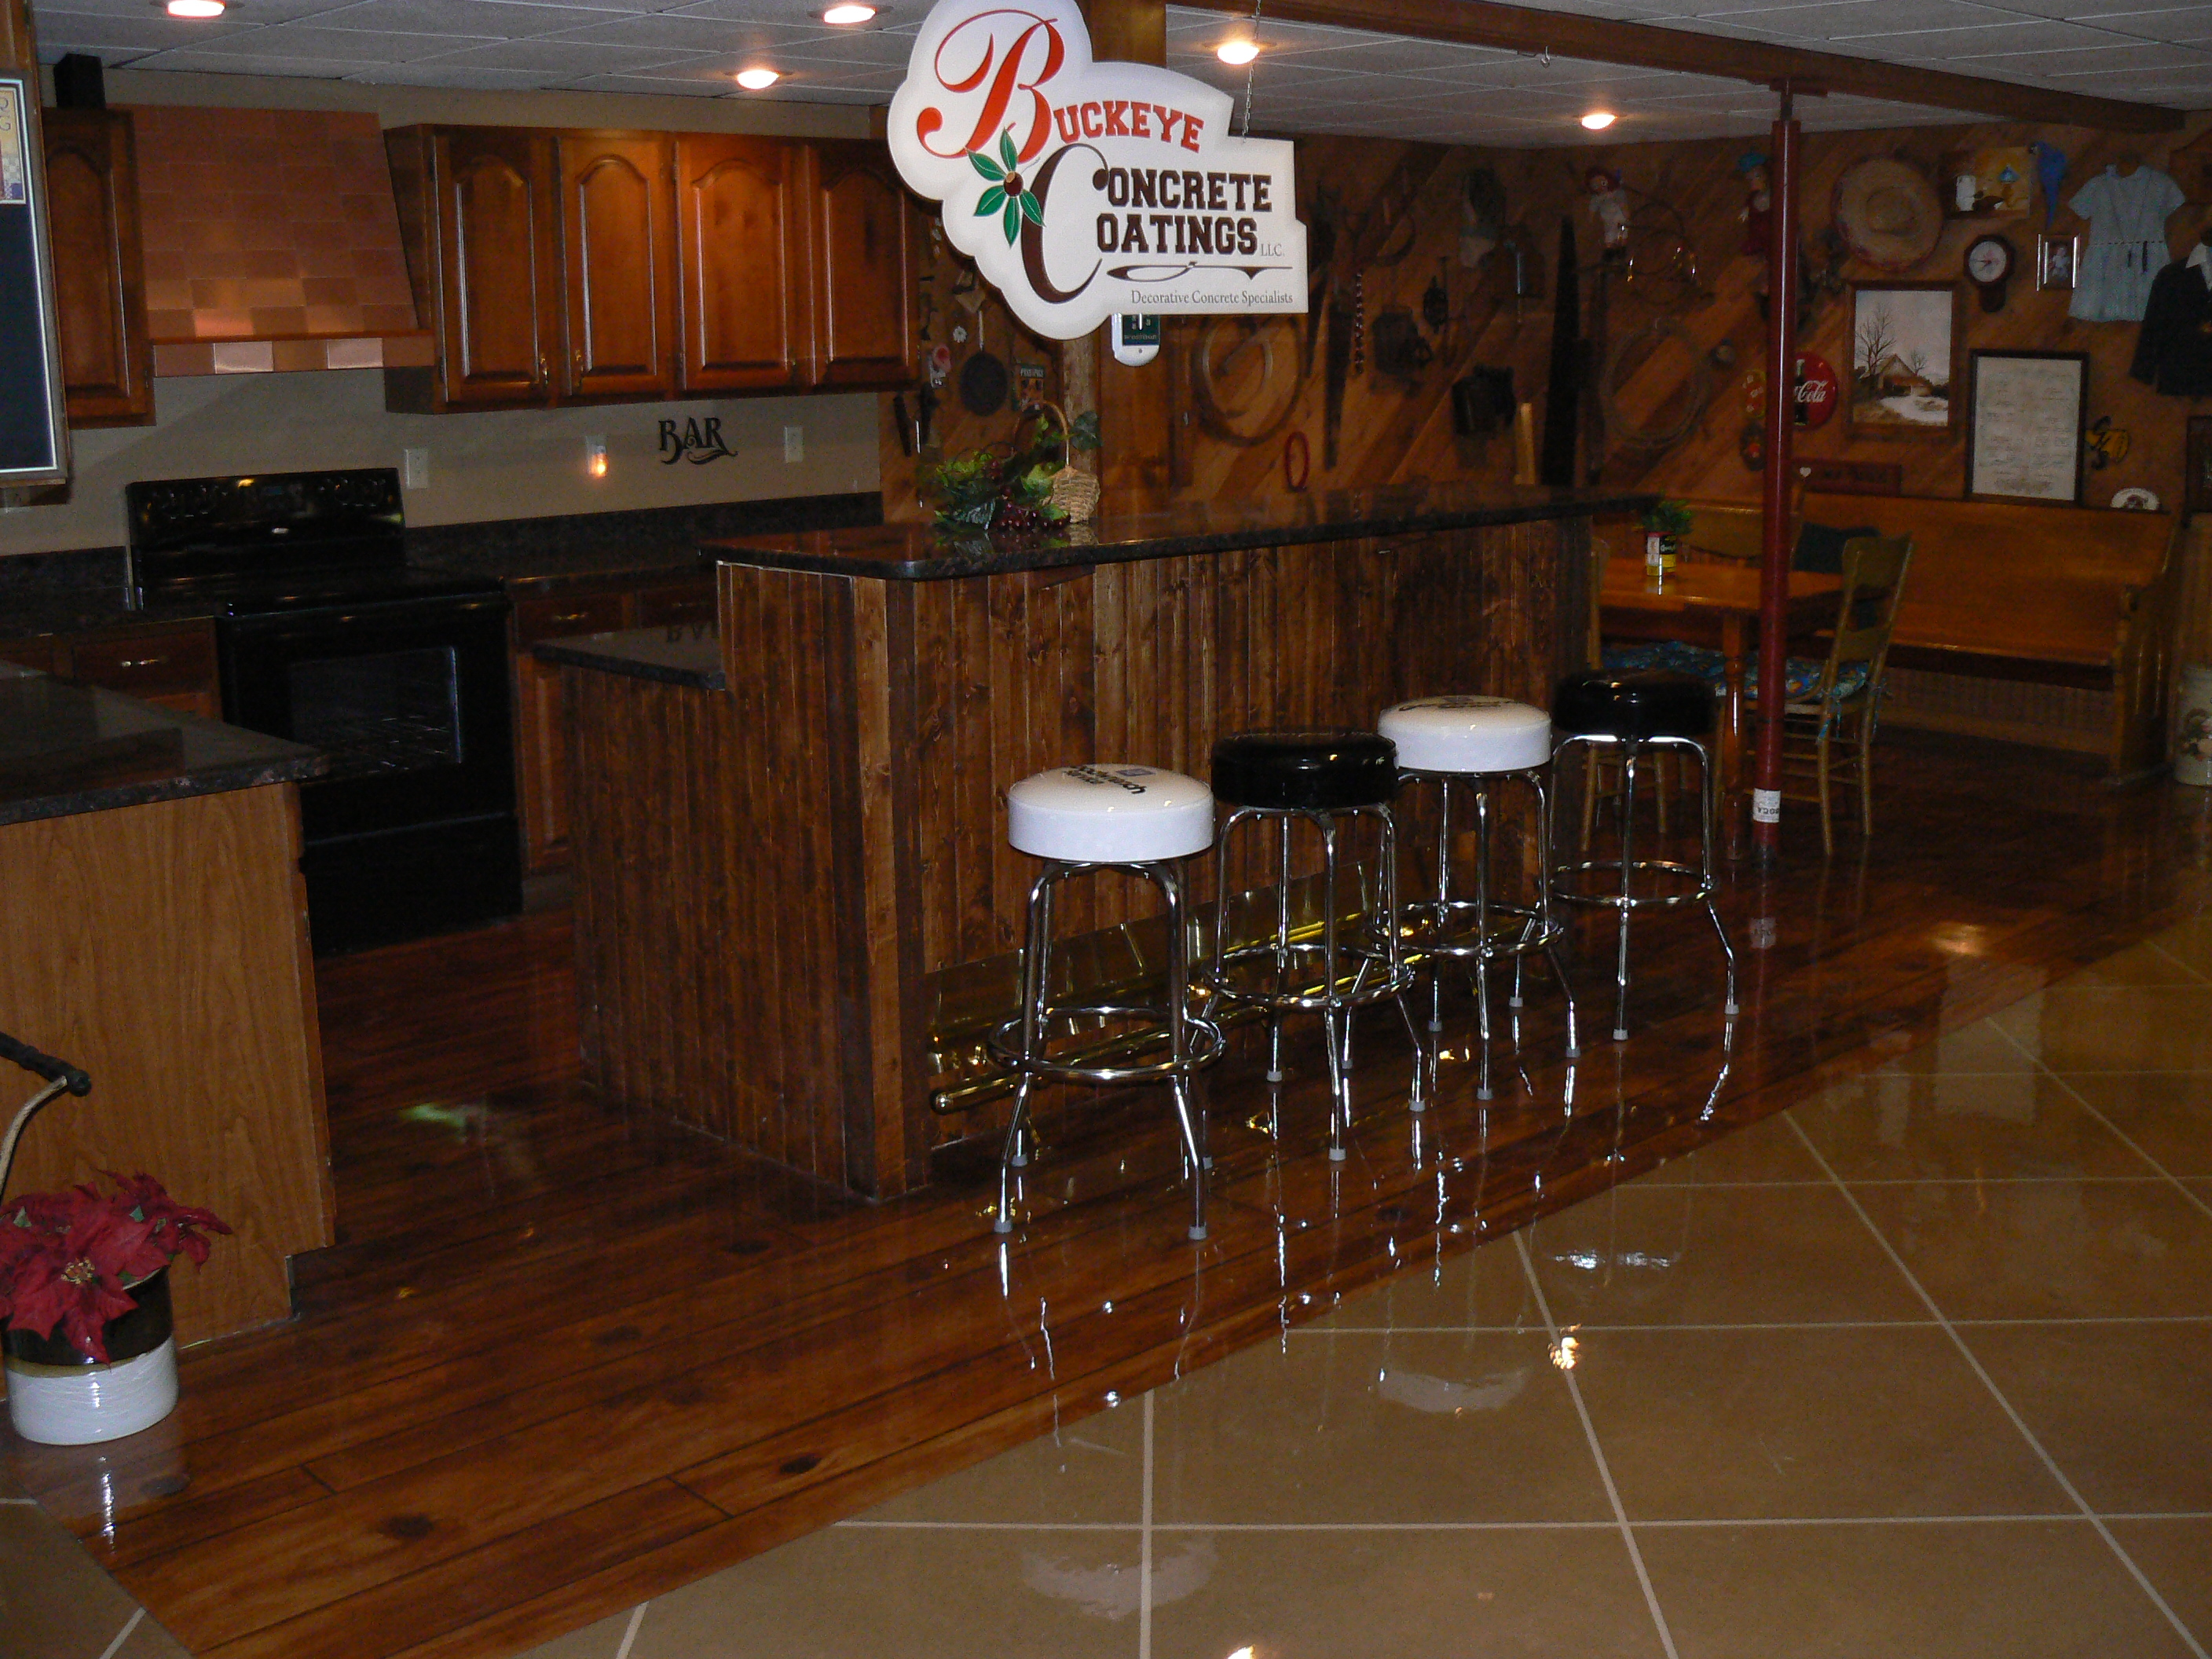 Basement Wood Floor And Stained Tile Floor Near